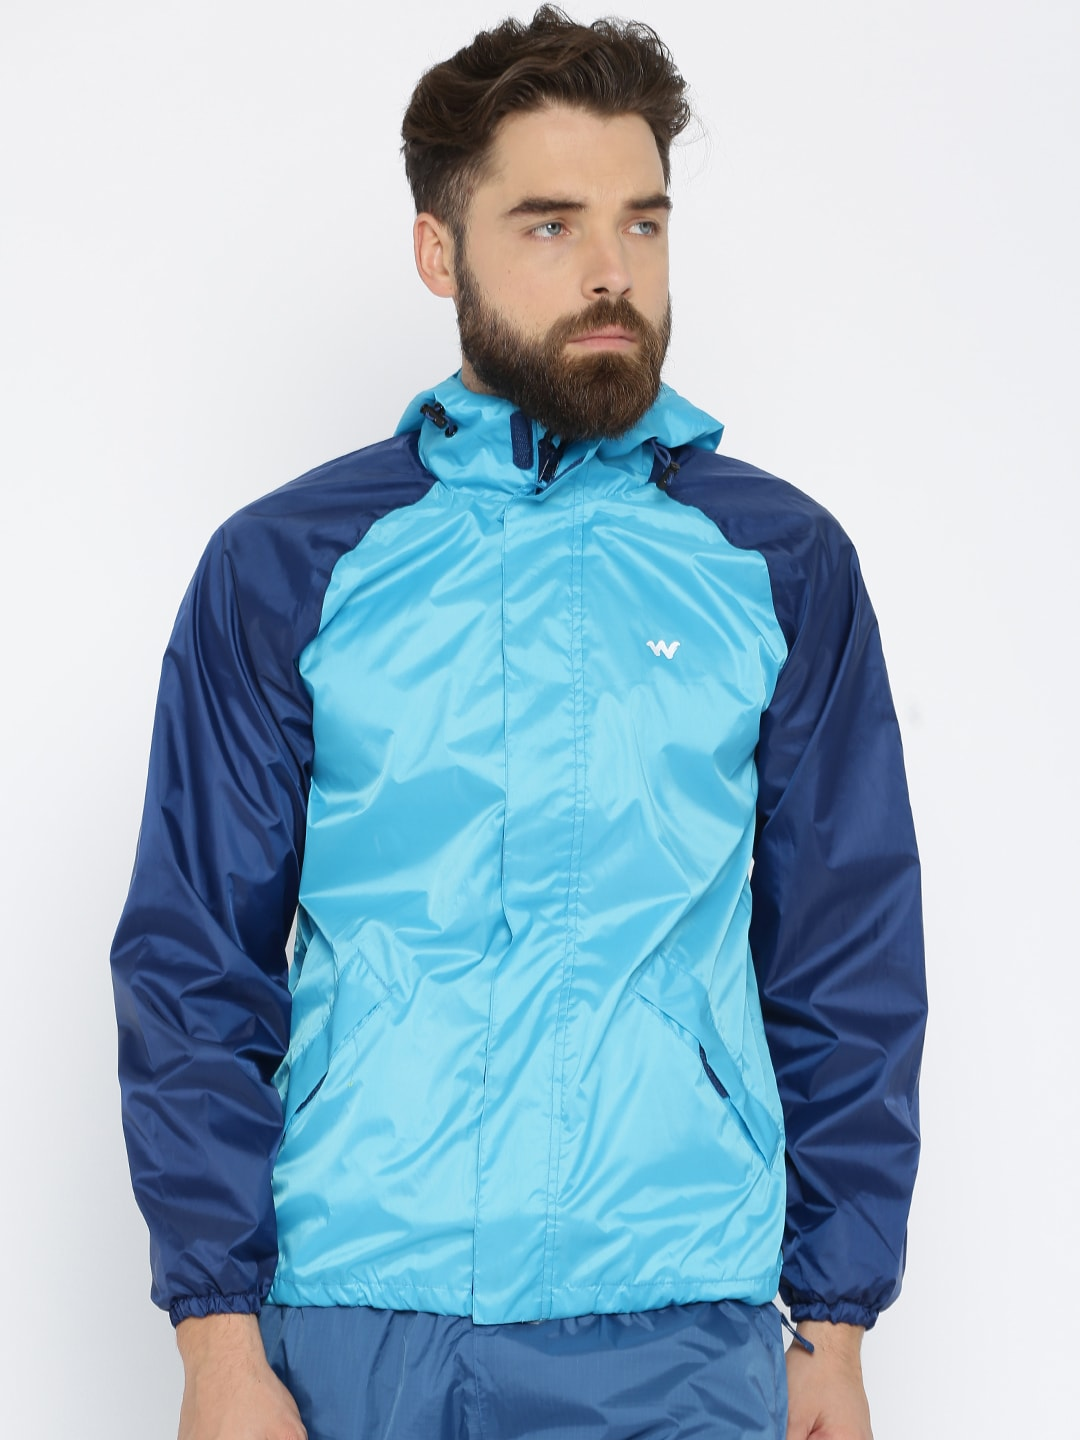 3eeba5e2f Wildcraft Blue Hooded Waterproof Rain Jacket 2 Tone